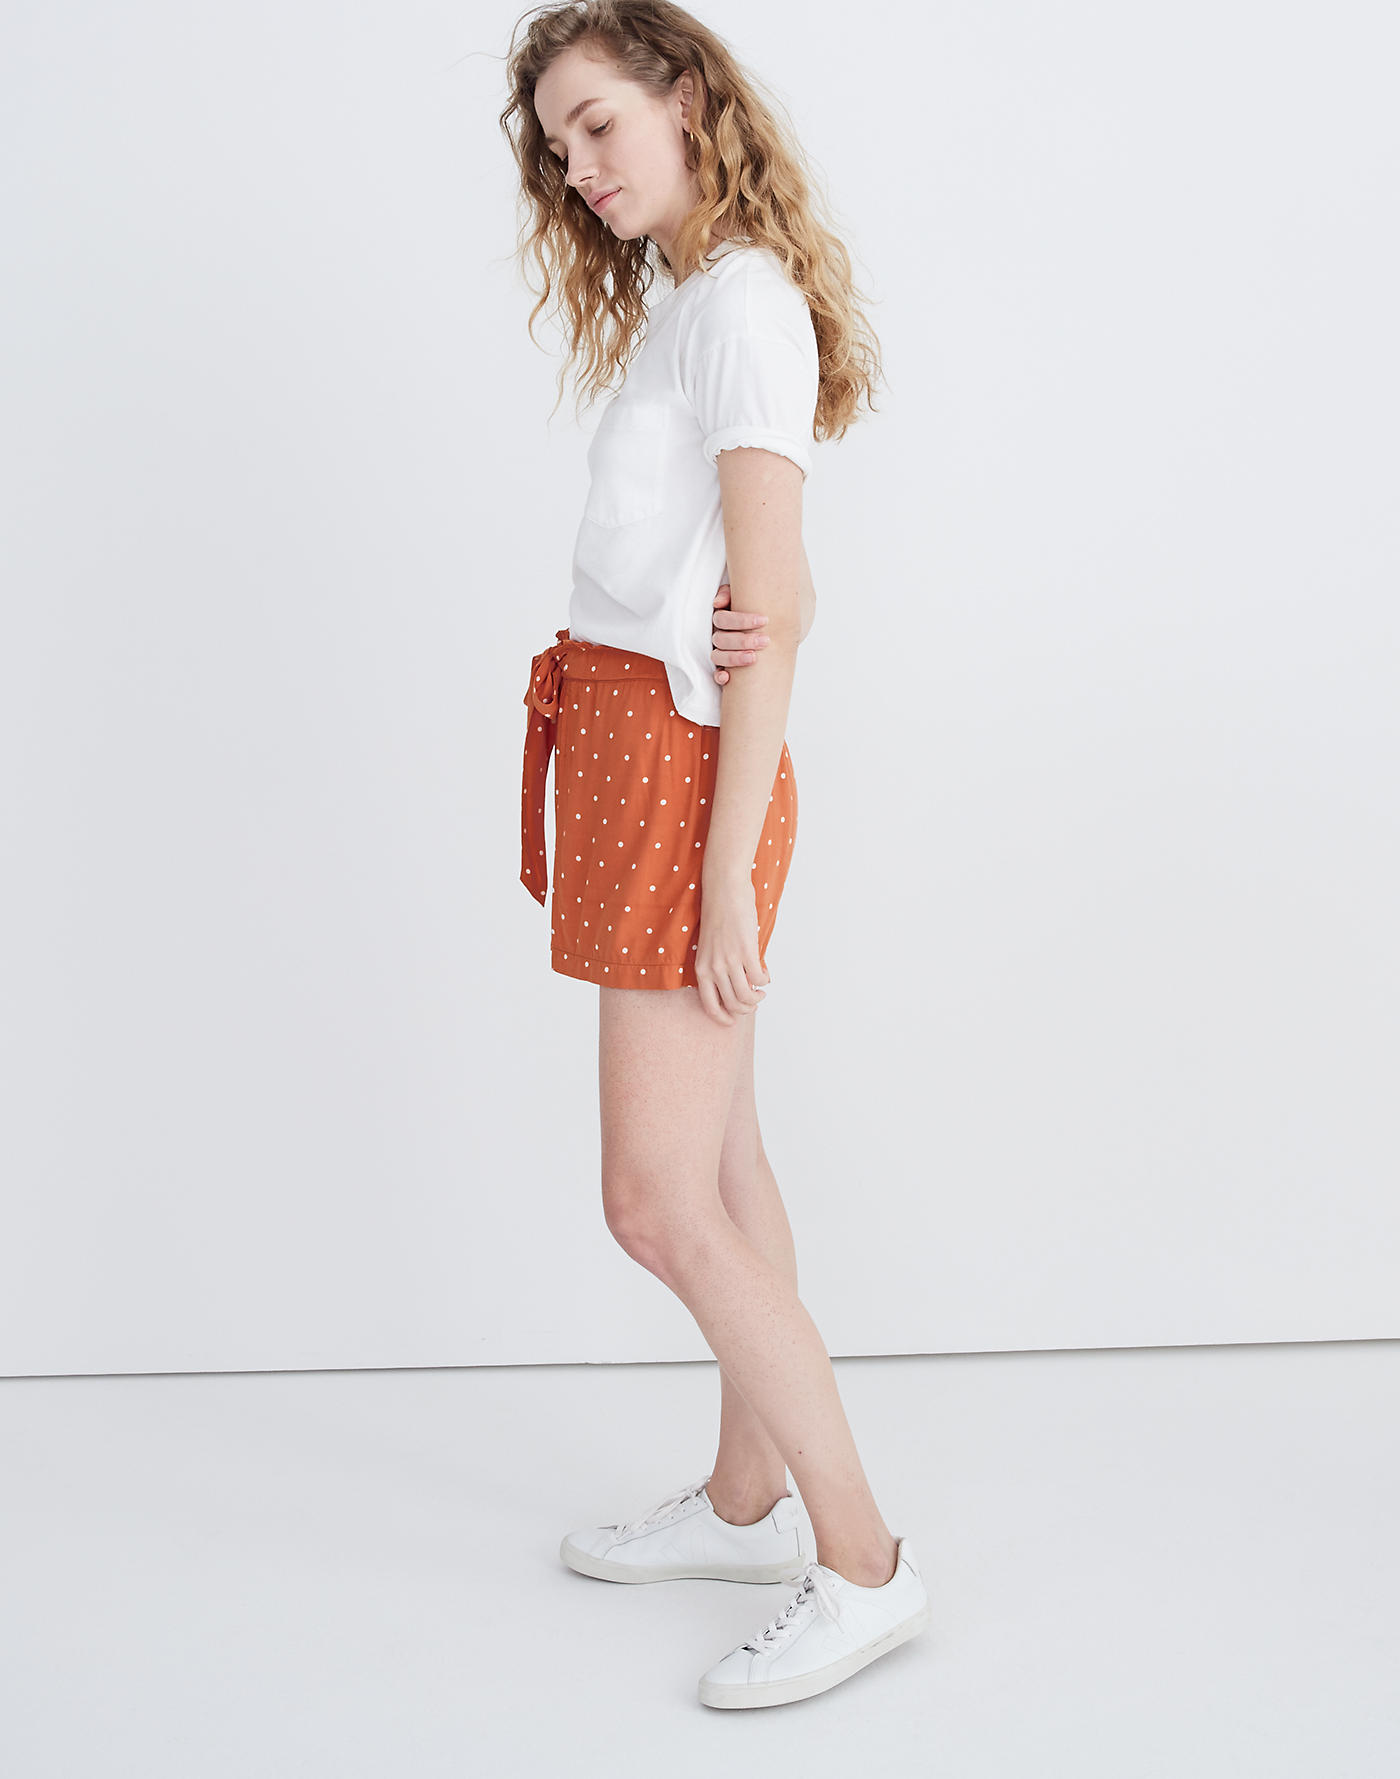 Drapey Pull-On Shorts in Polka Dot